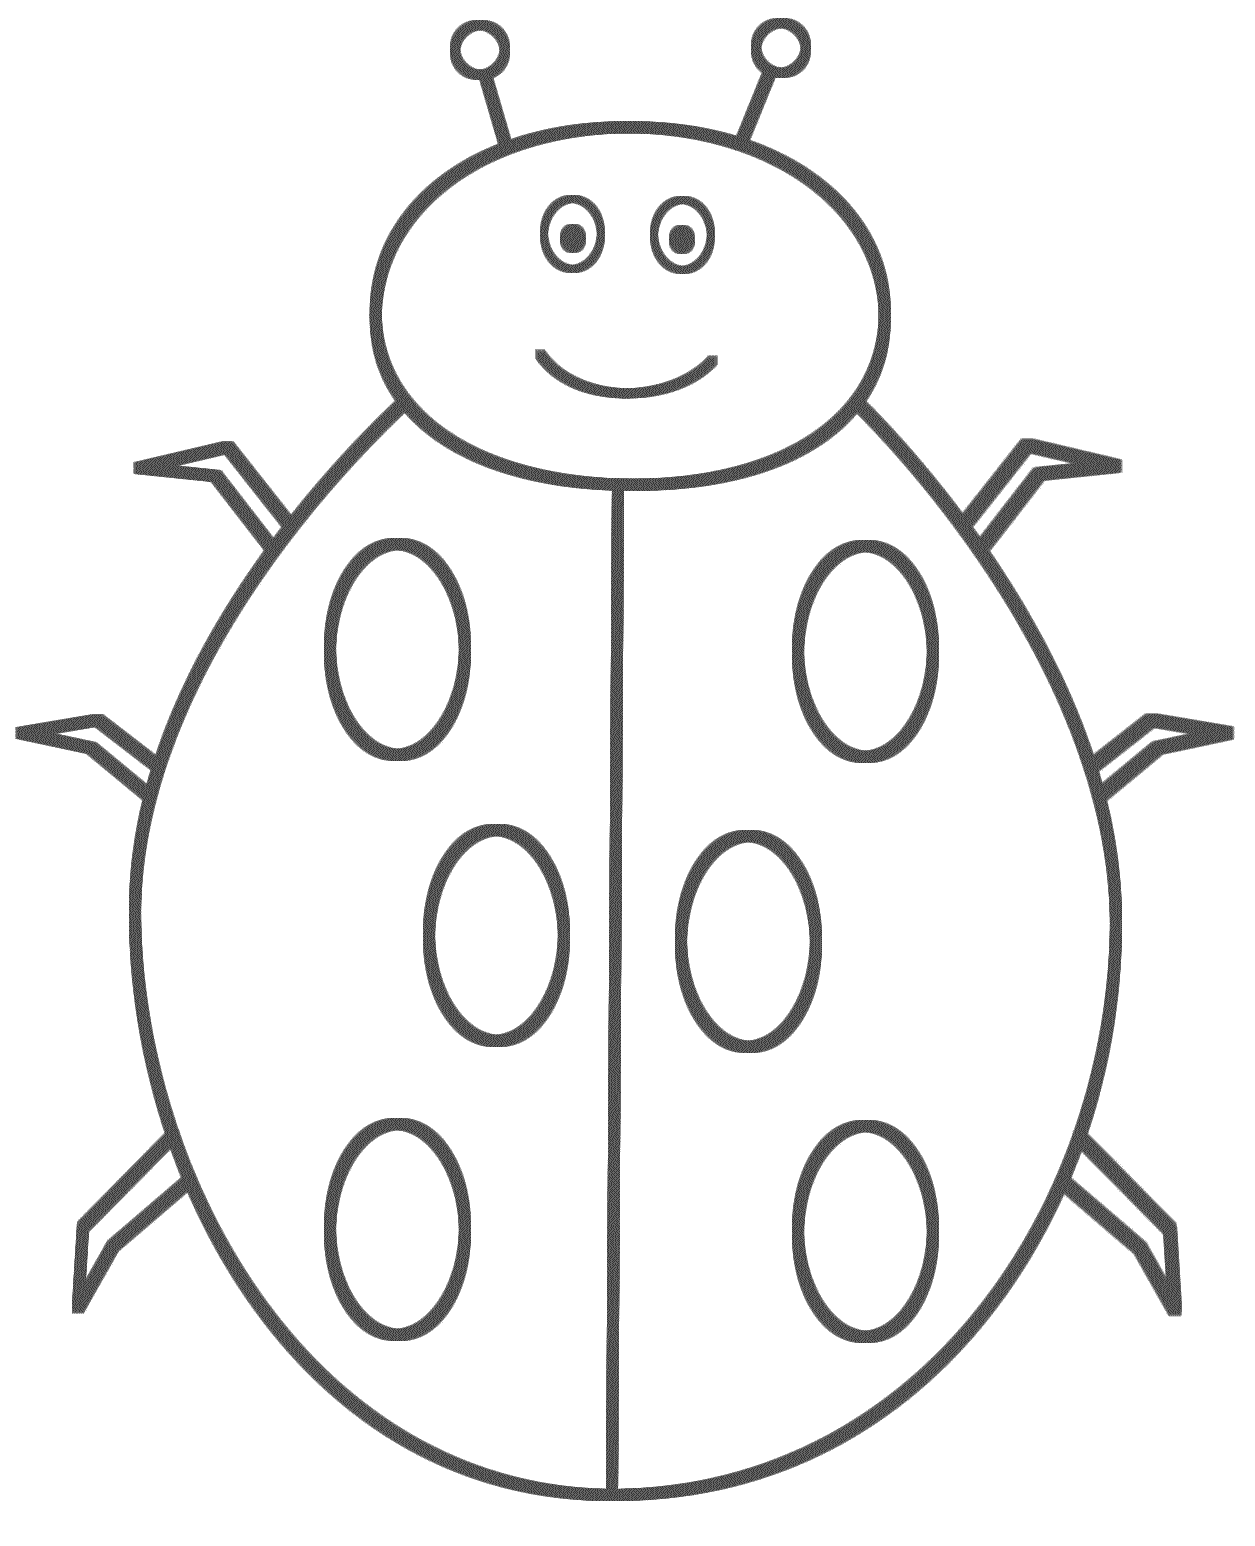 Ladybug Smiling - Coloring Page (Insects)